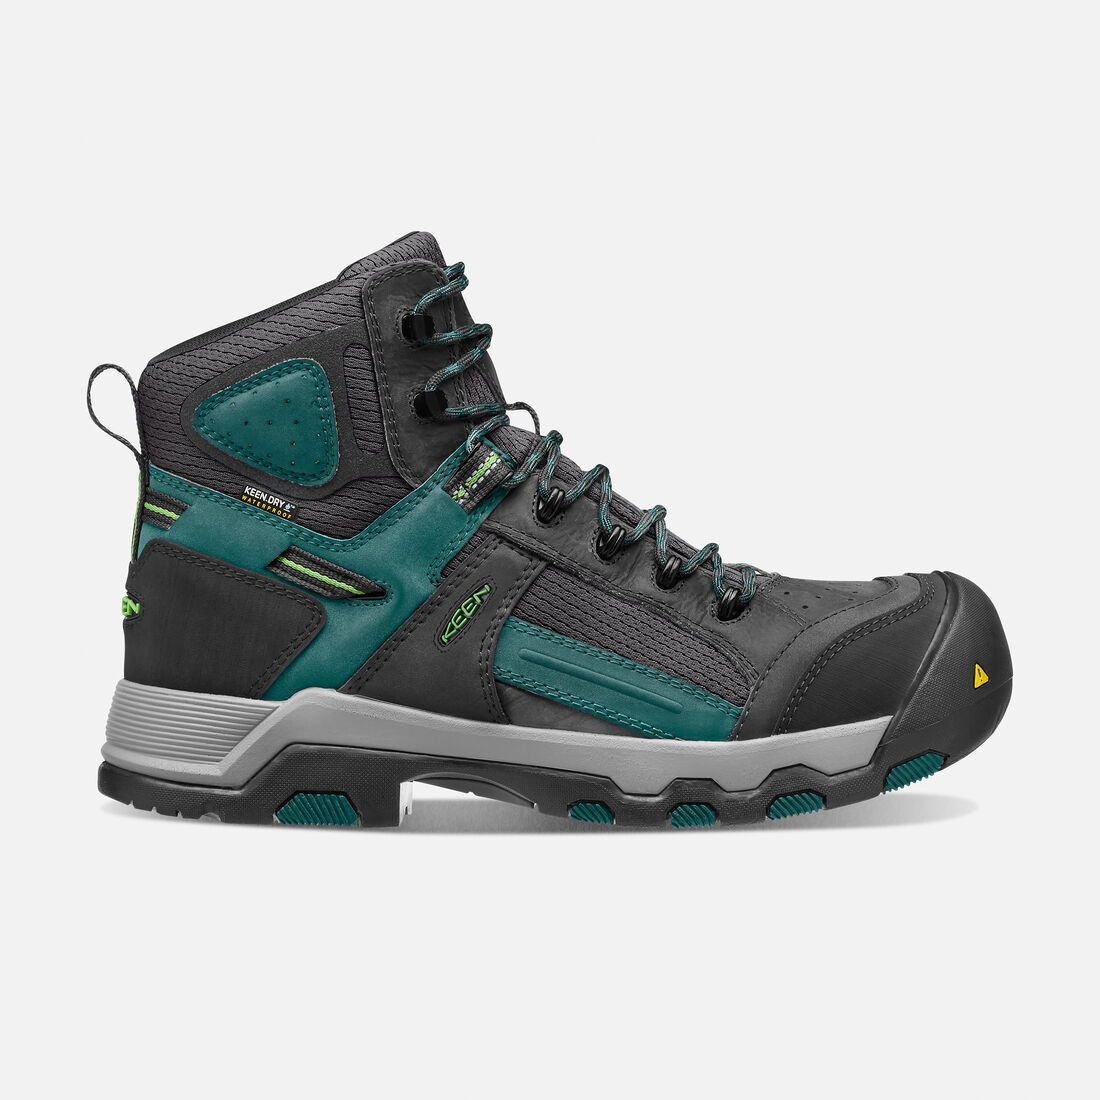 CSA Davenport Waterproof Mid (Composite Toe) pour homme in Black/Deep Teal - large view.